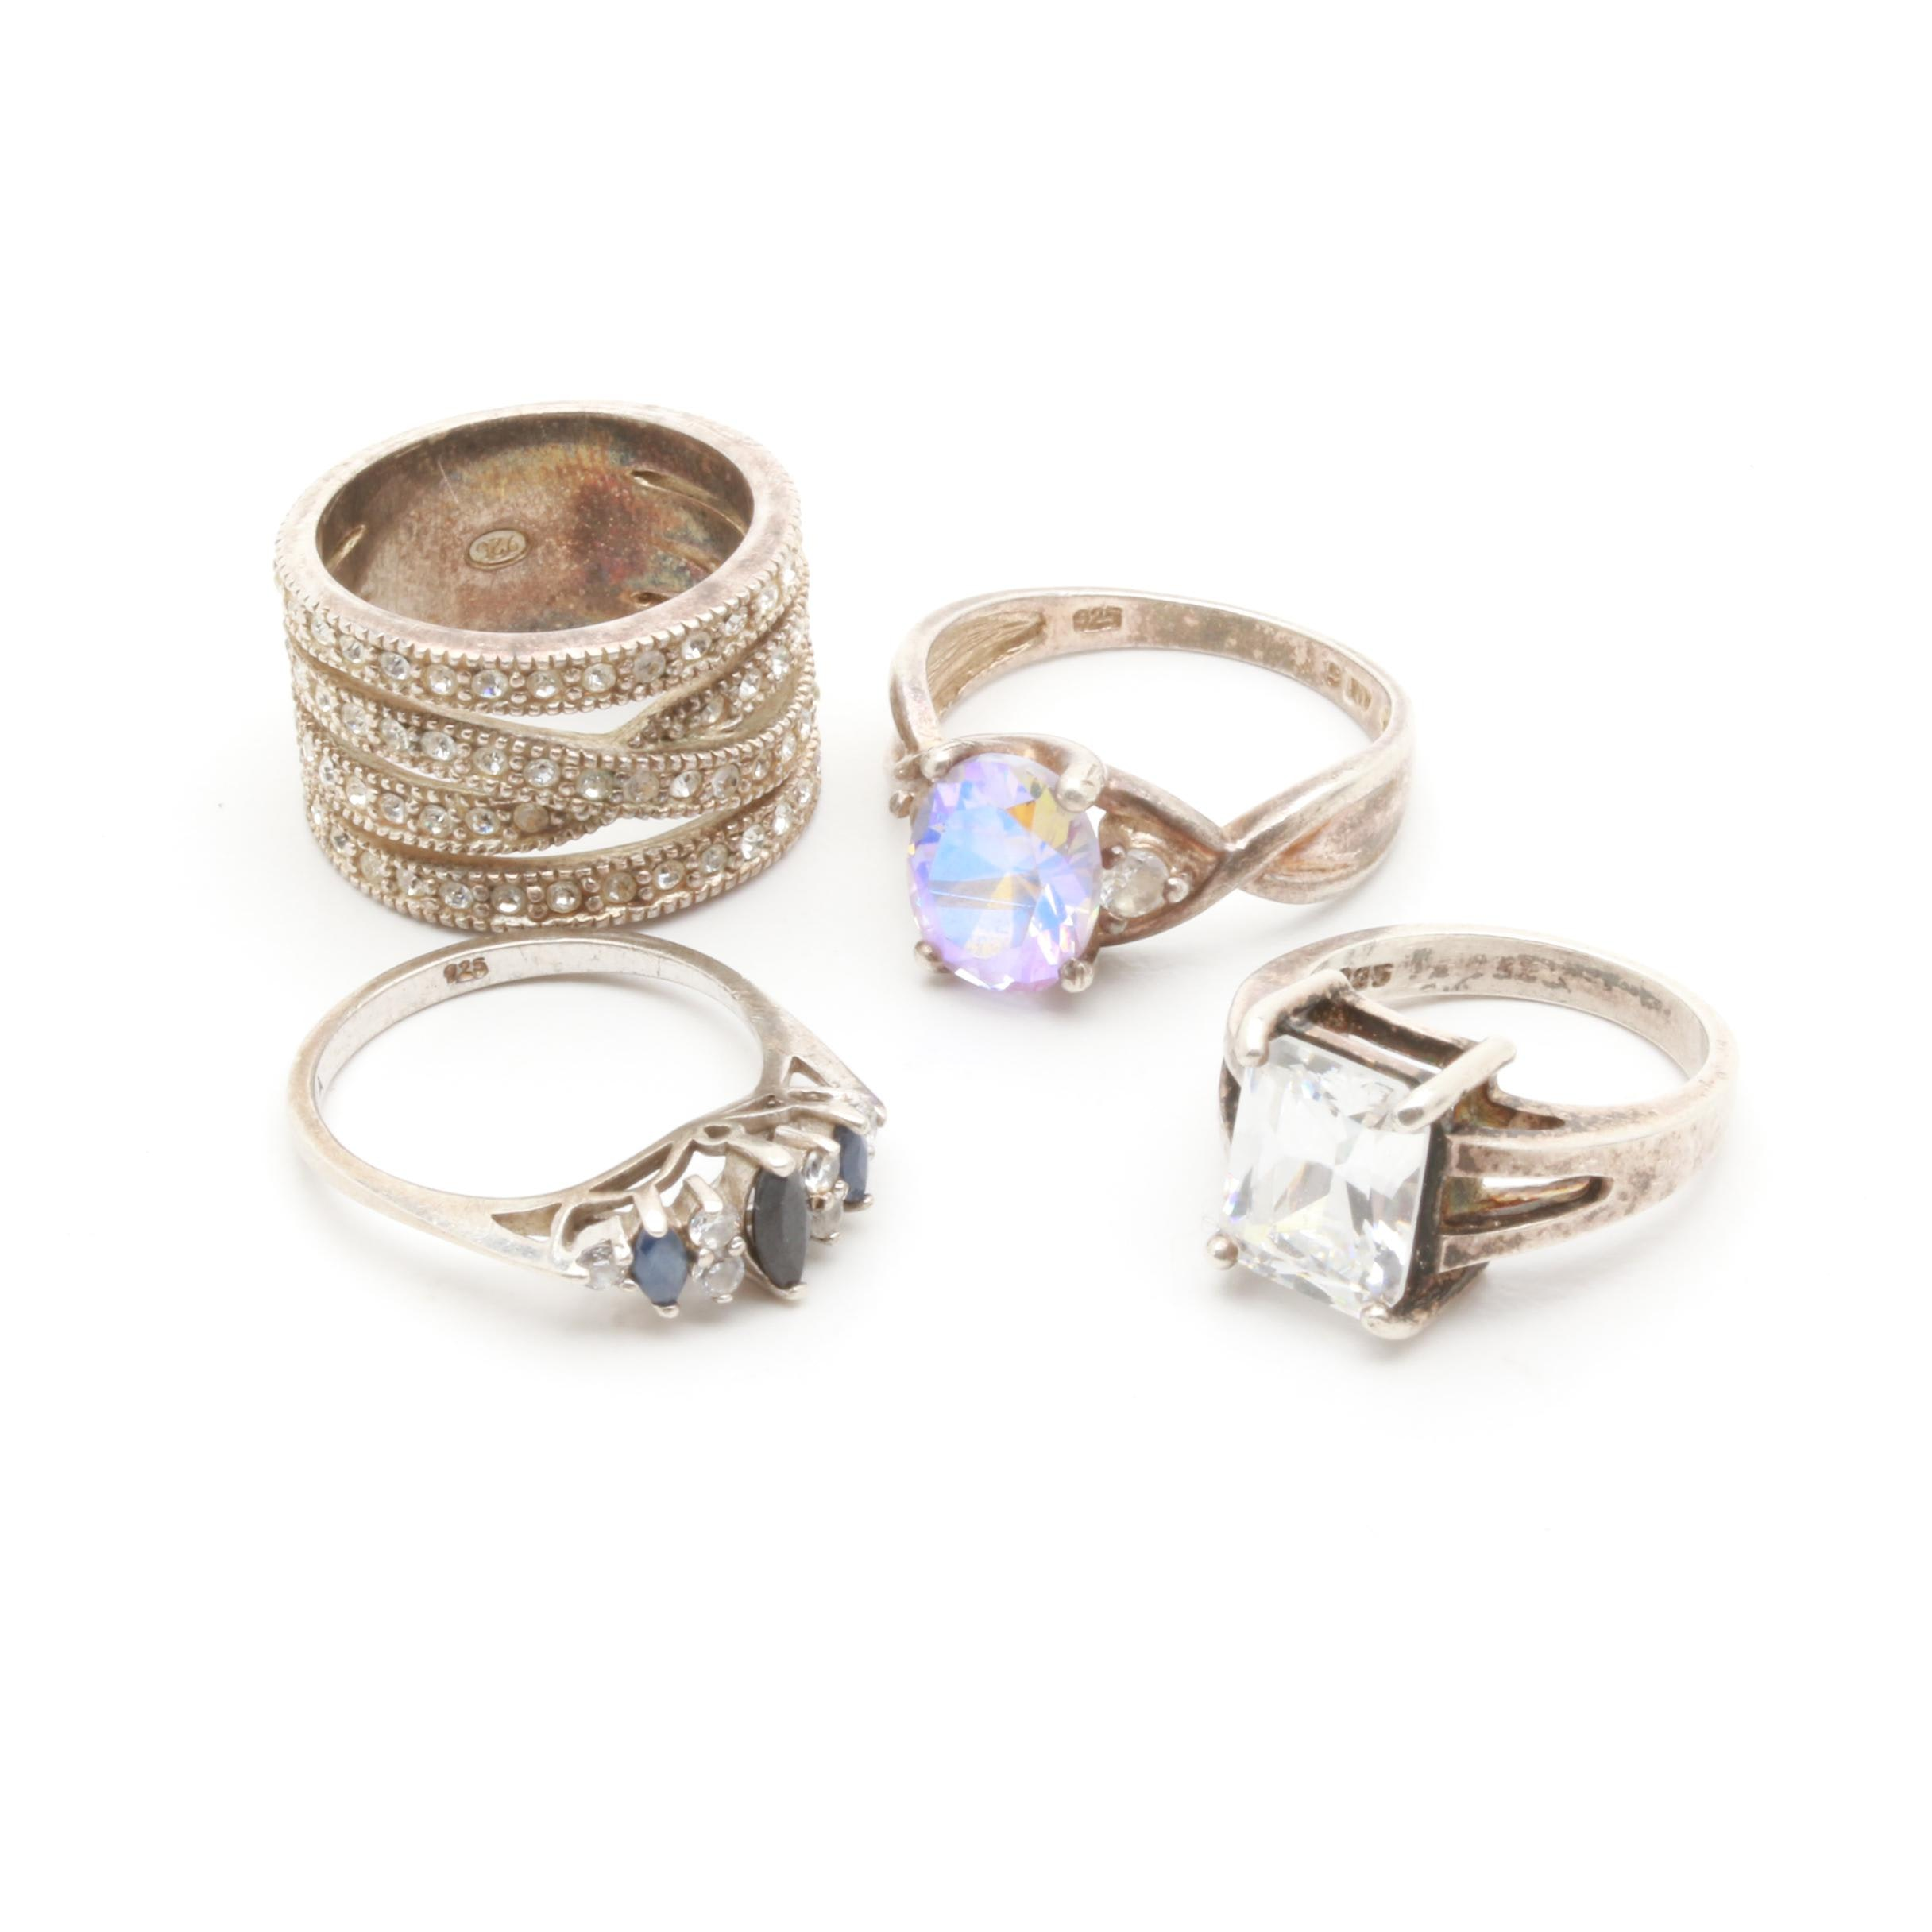 Sterling Silver Ring Selection Including Sapphire, Cubic Zirconia, and Glass